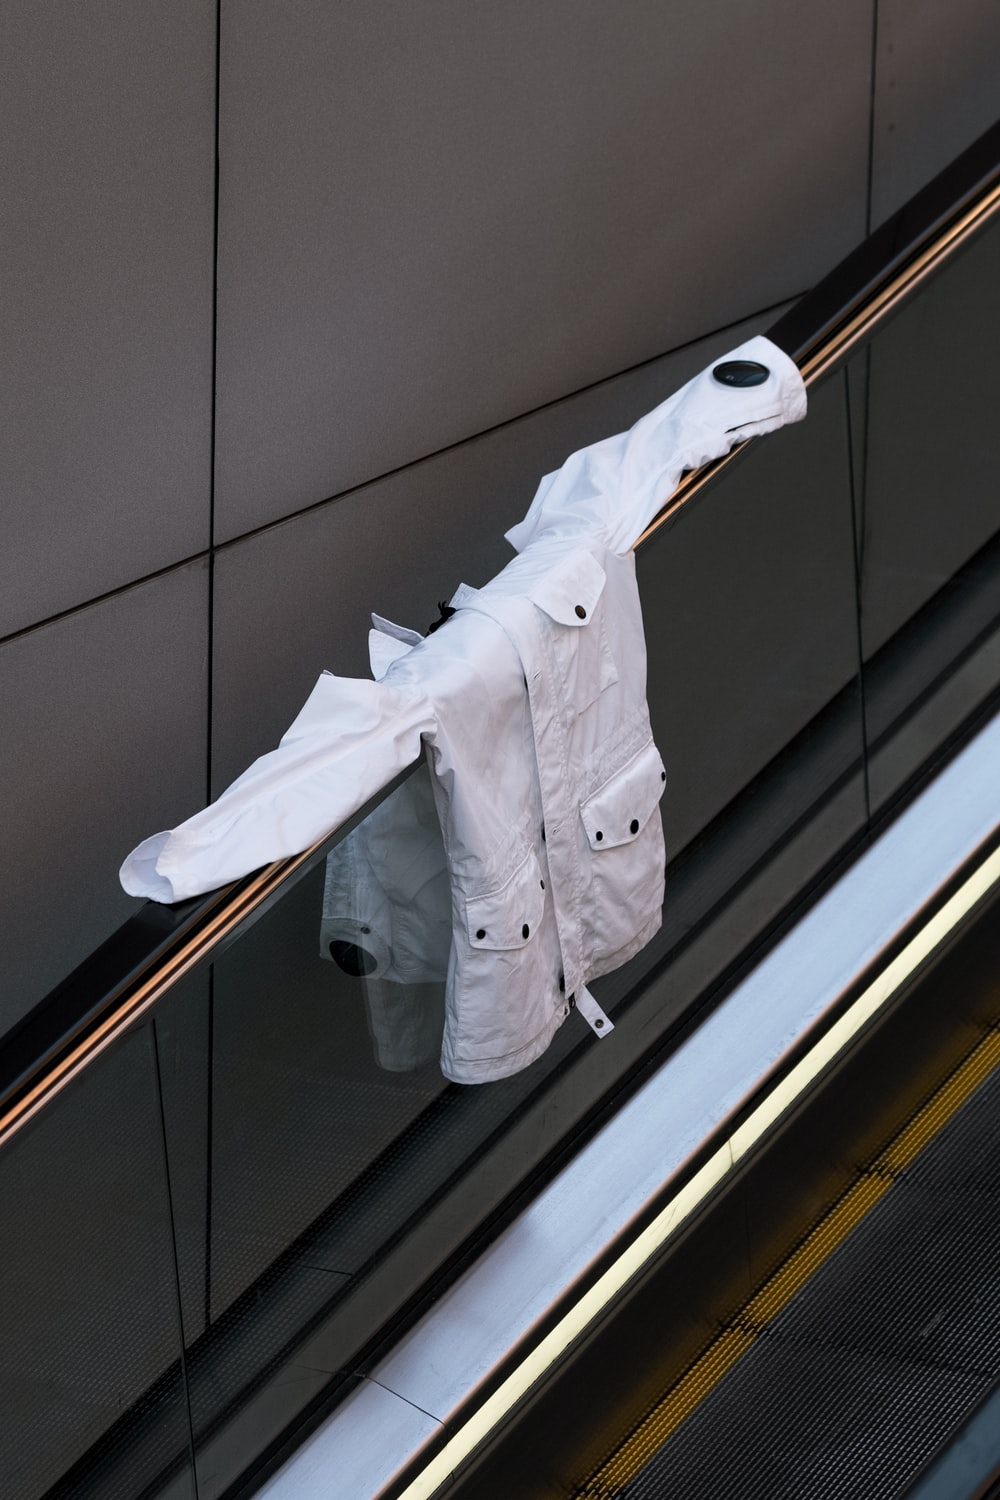 white dress in an escalator close-up photography